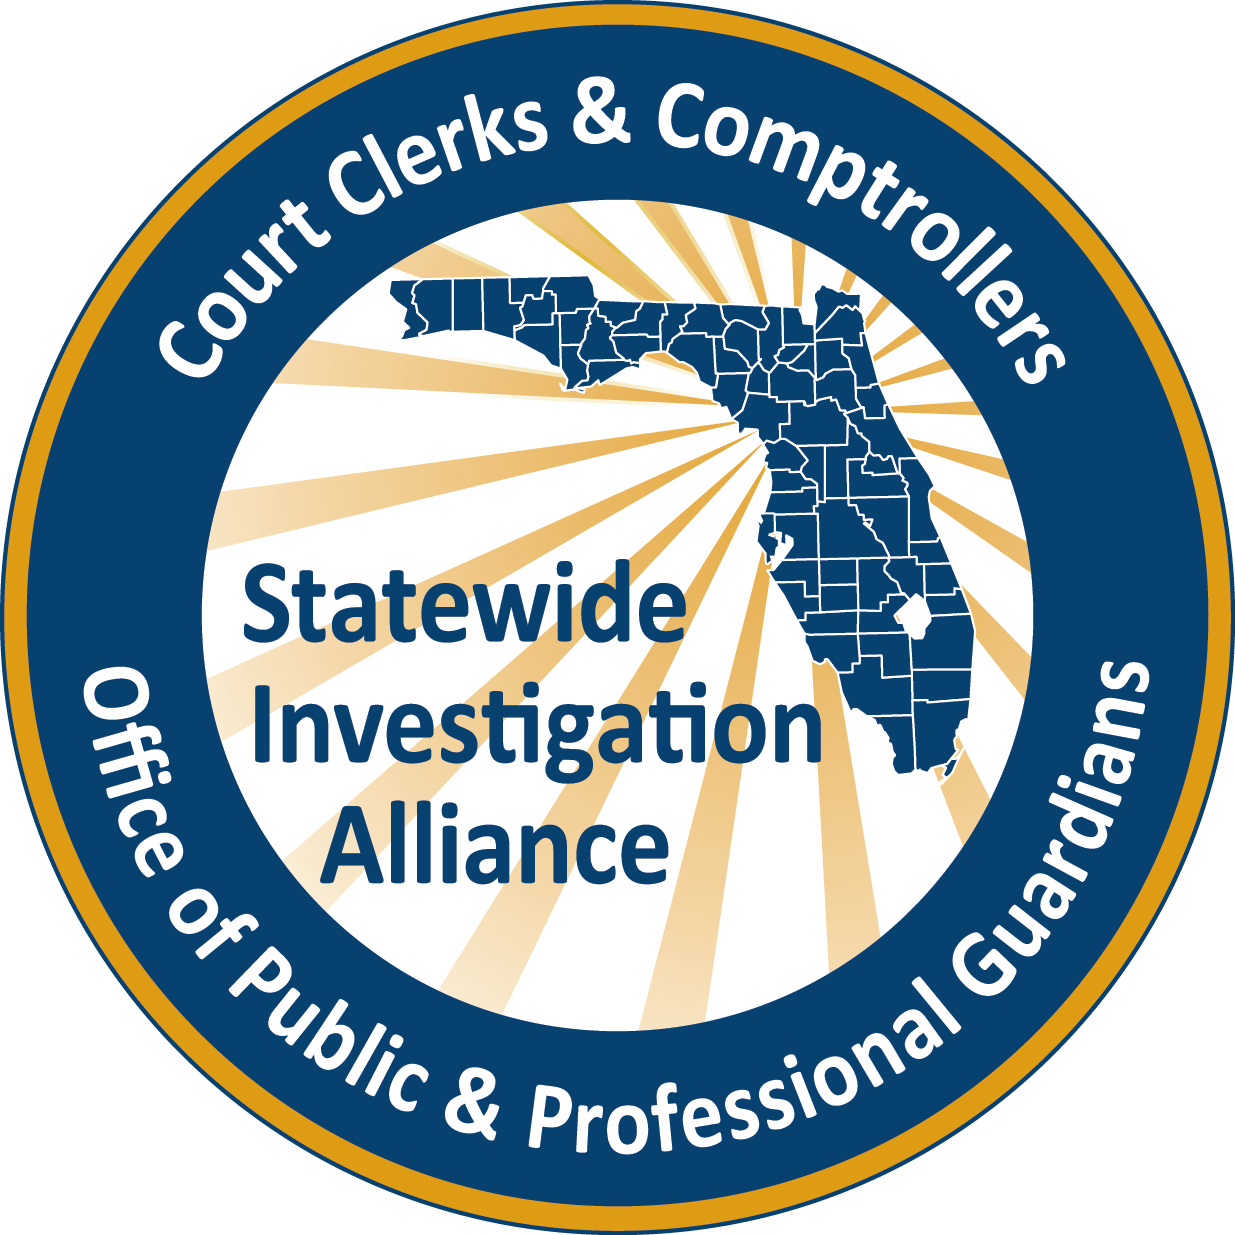 Statewide Investigation Alliance seal